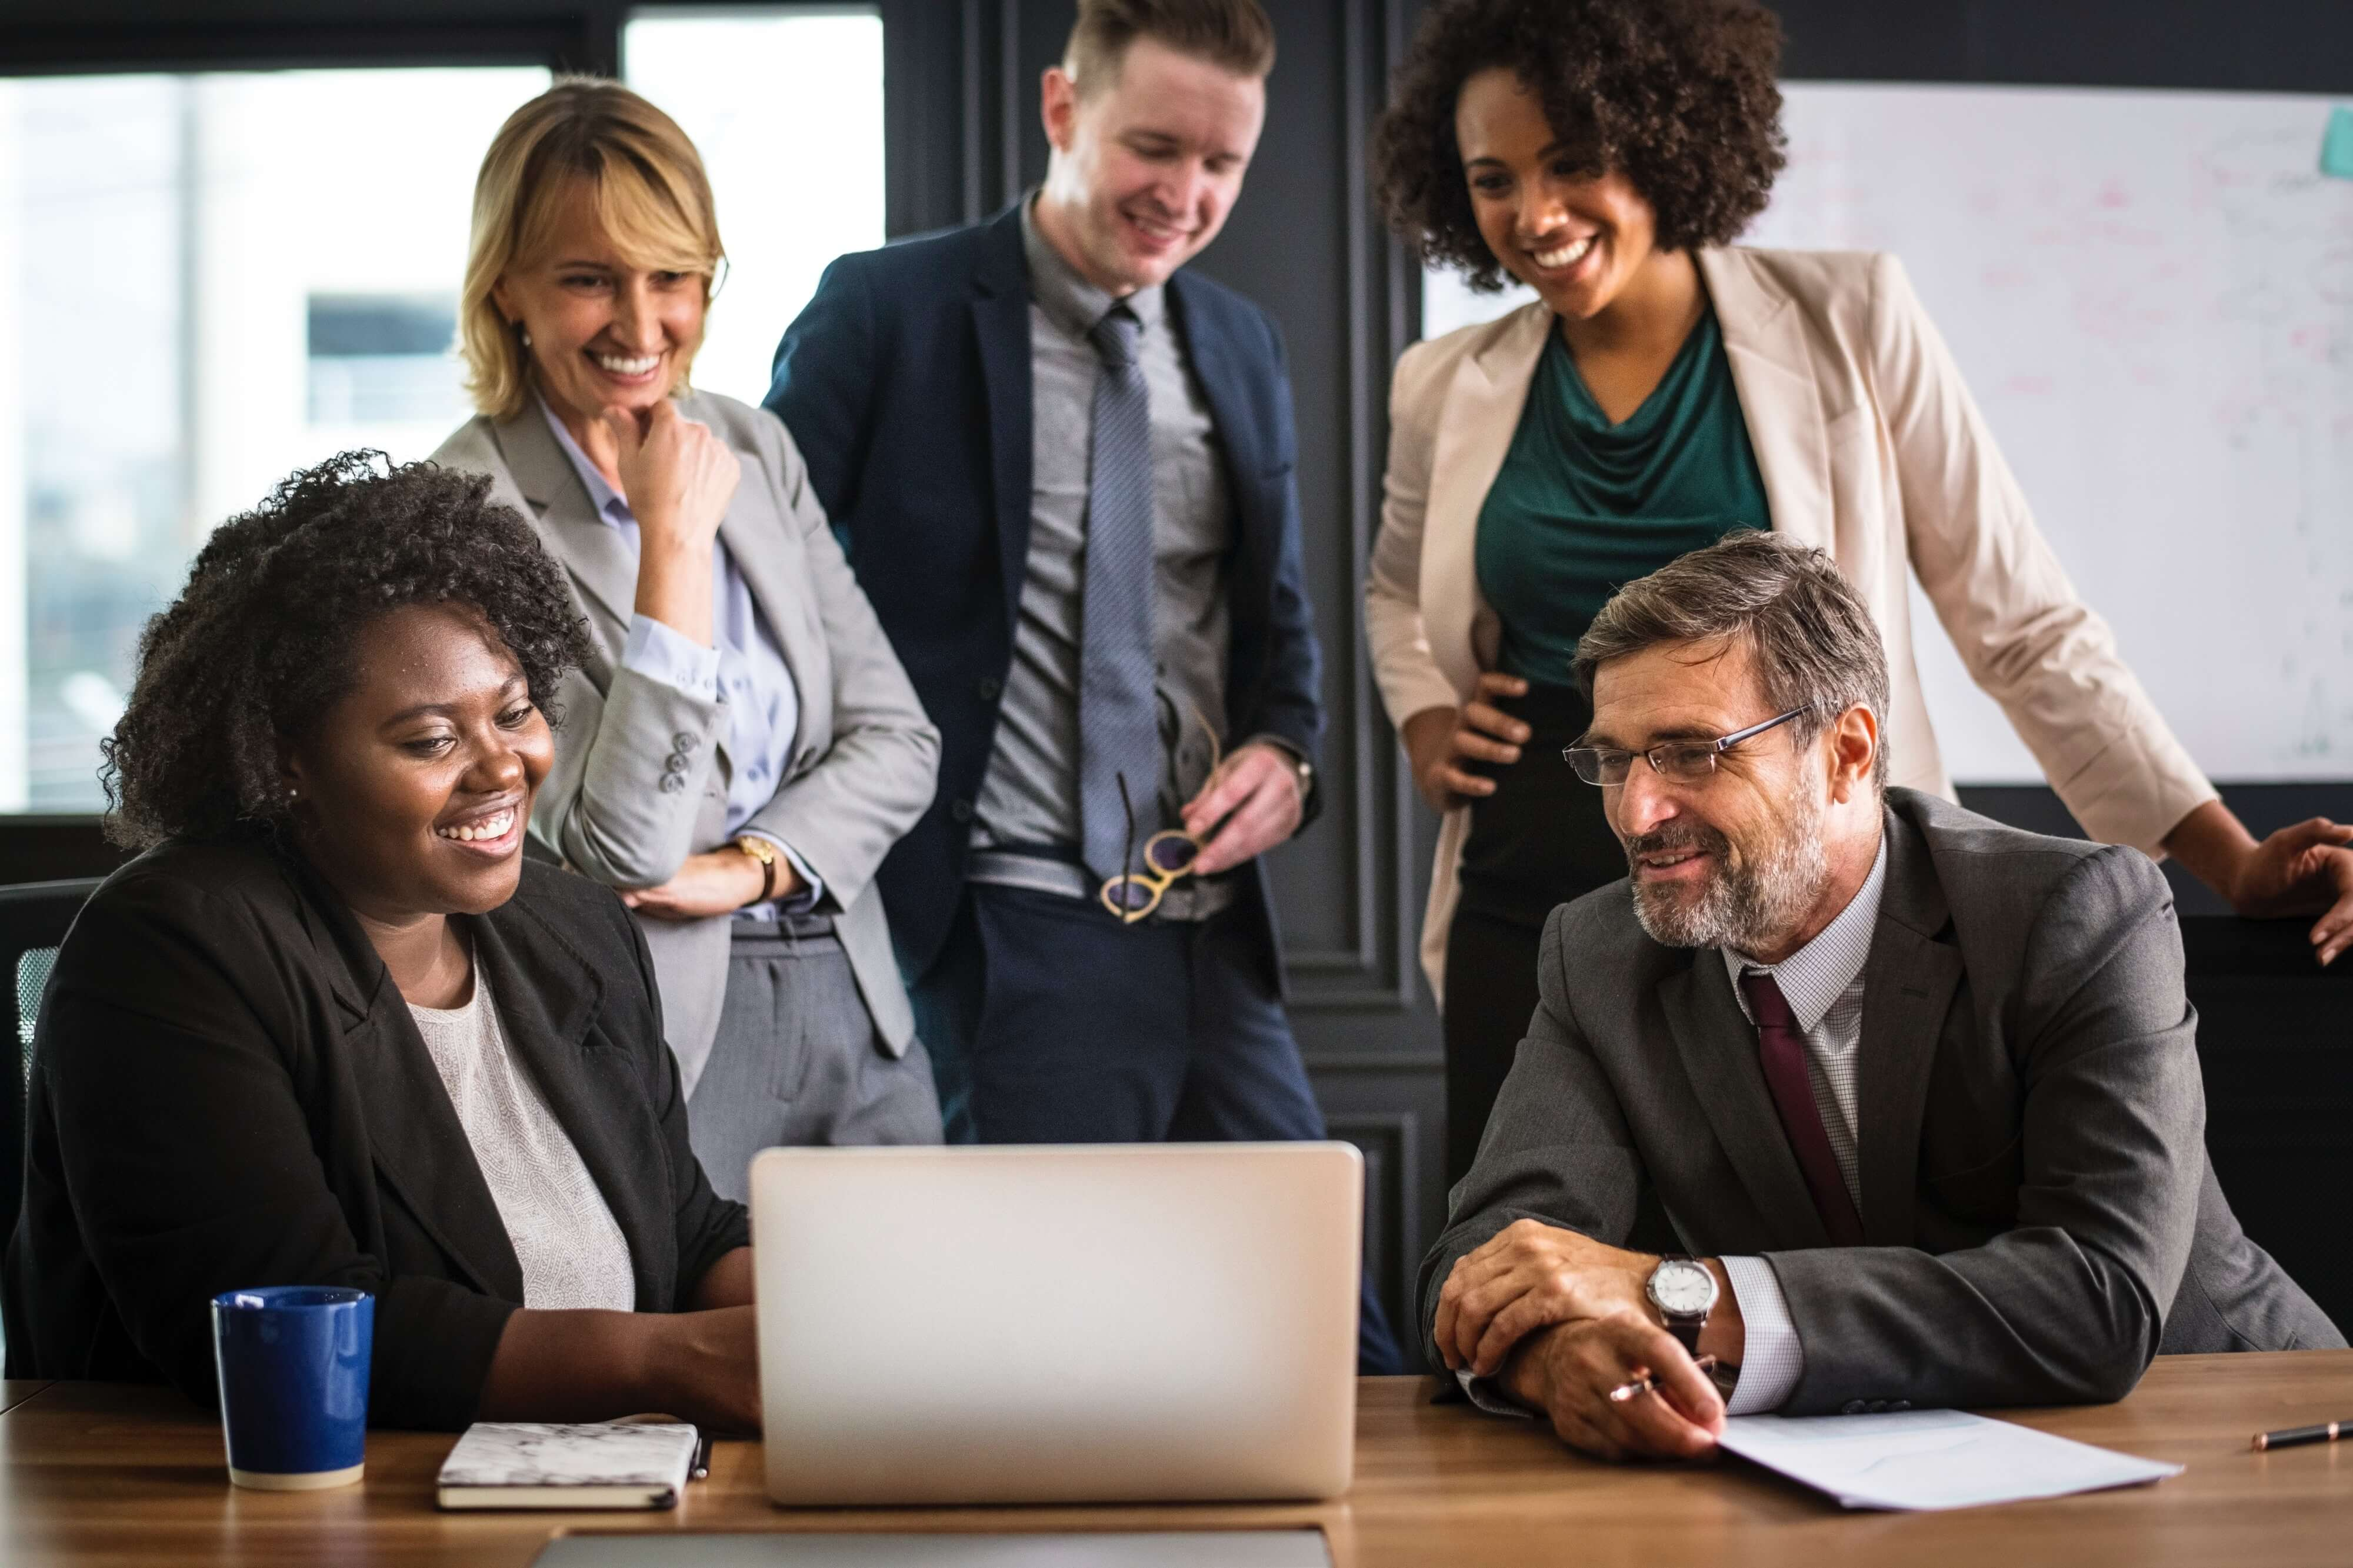 stock image of office staff website images